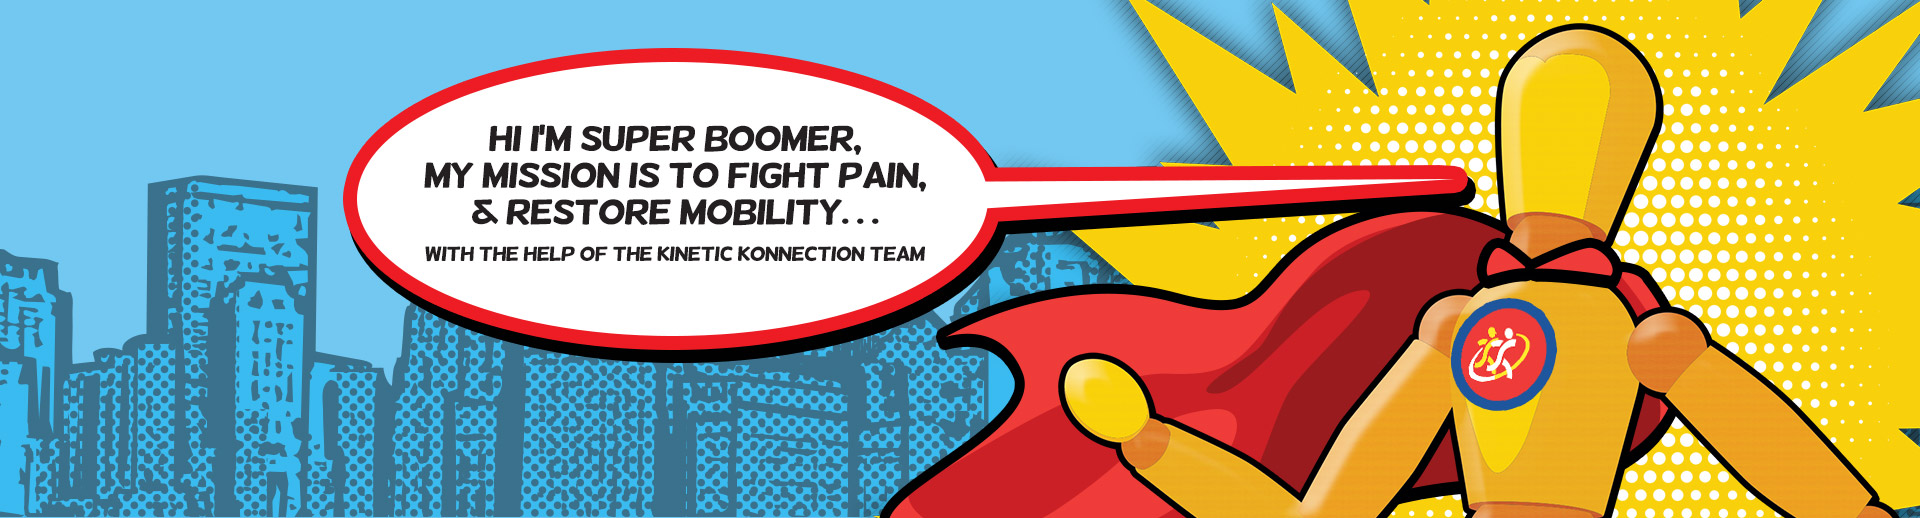 hi I'm super boomer, my mission is to fight pain, & restore mobility. . . with the help of the kinetic konnection team